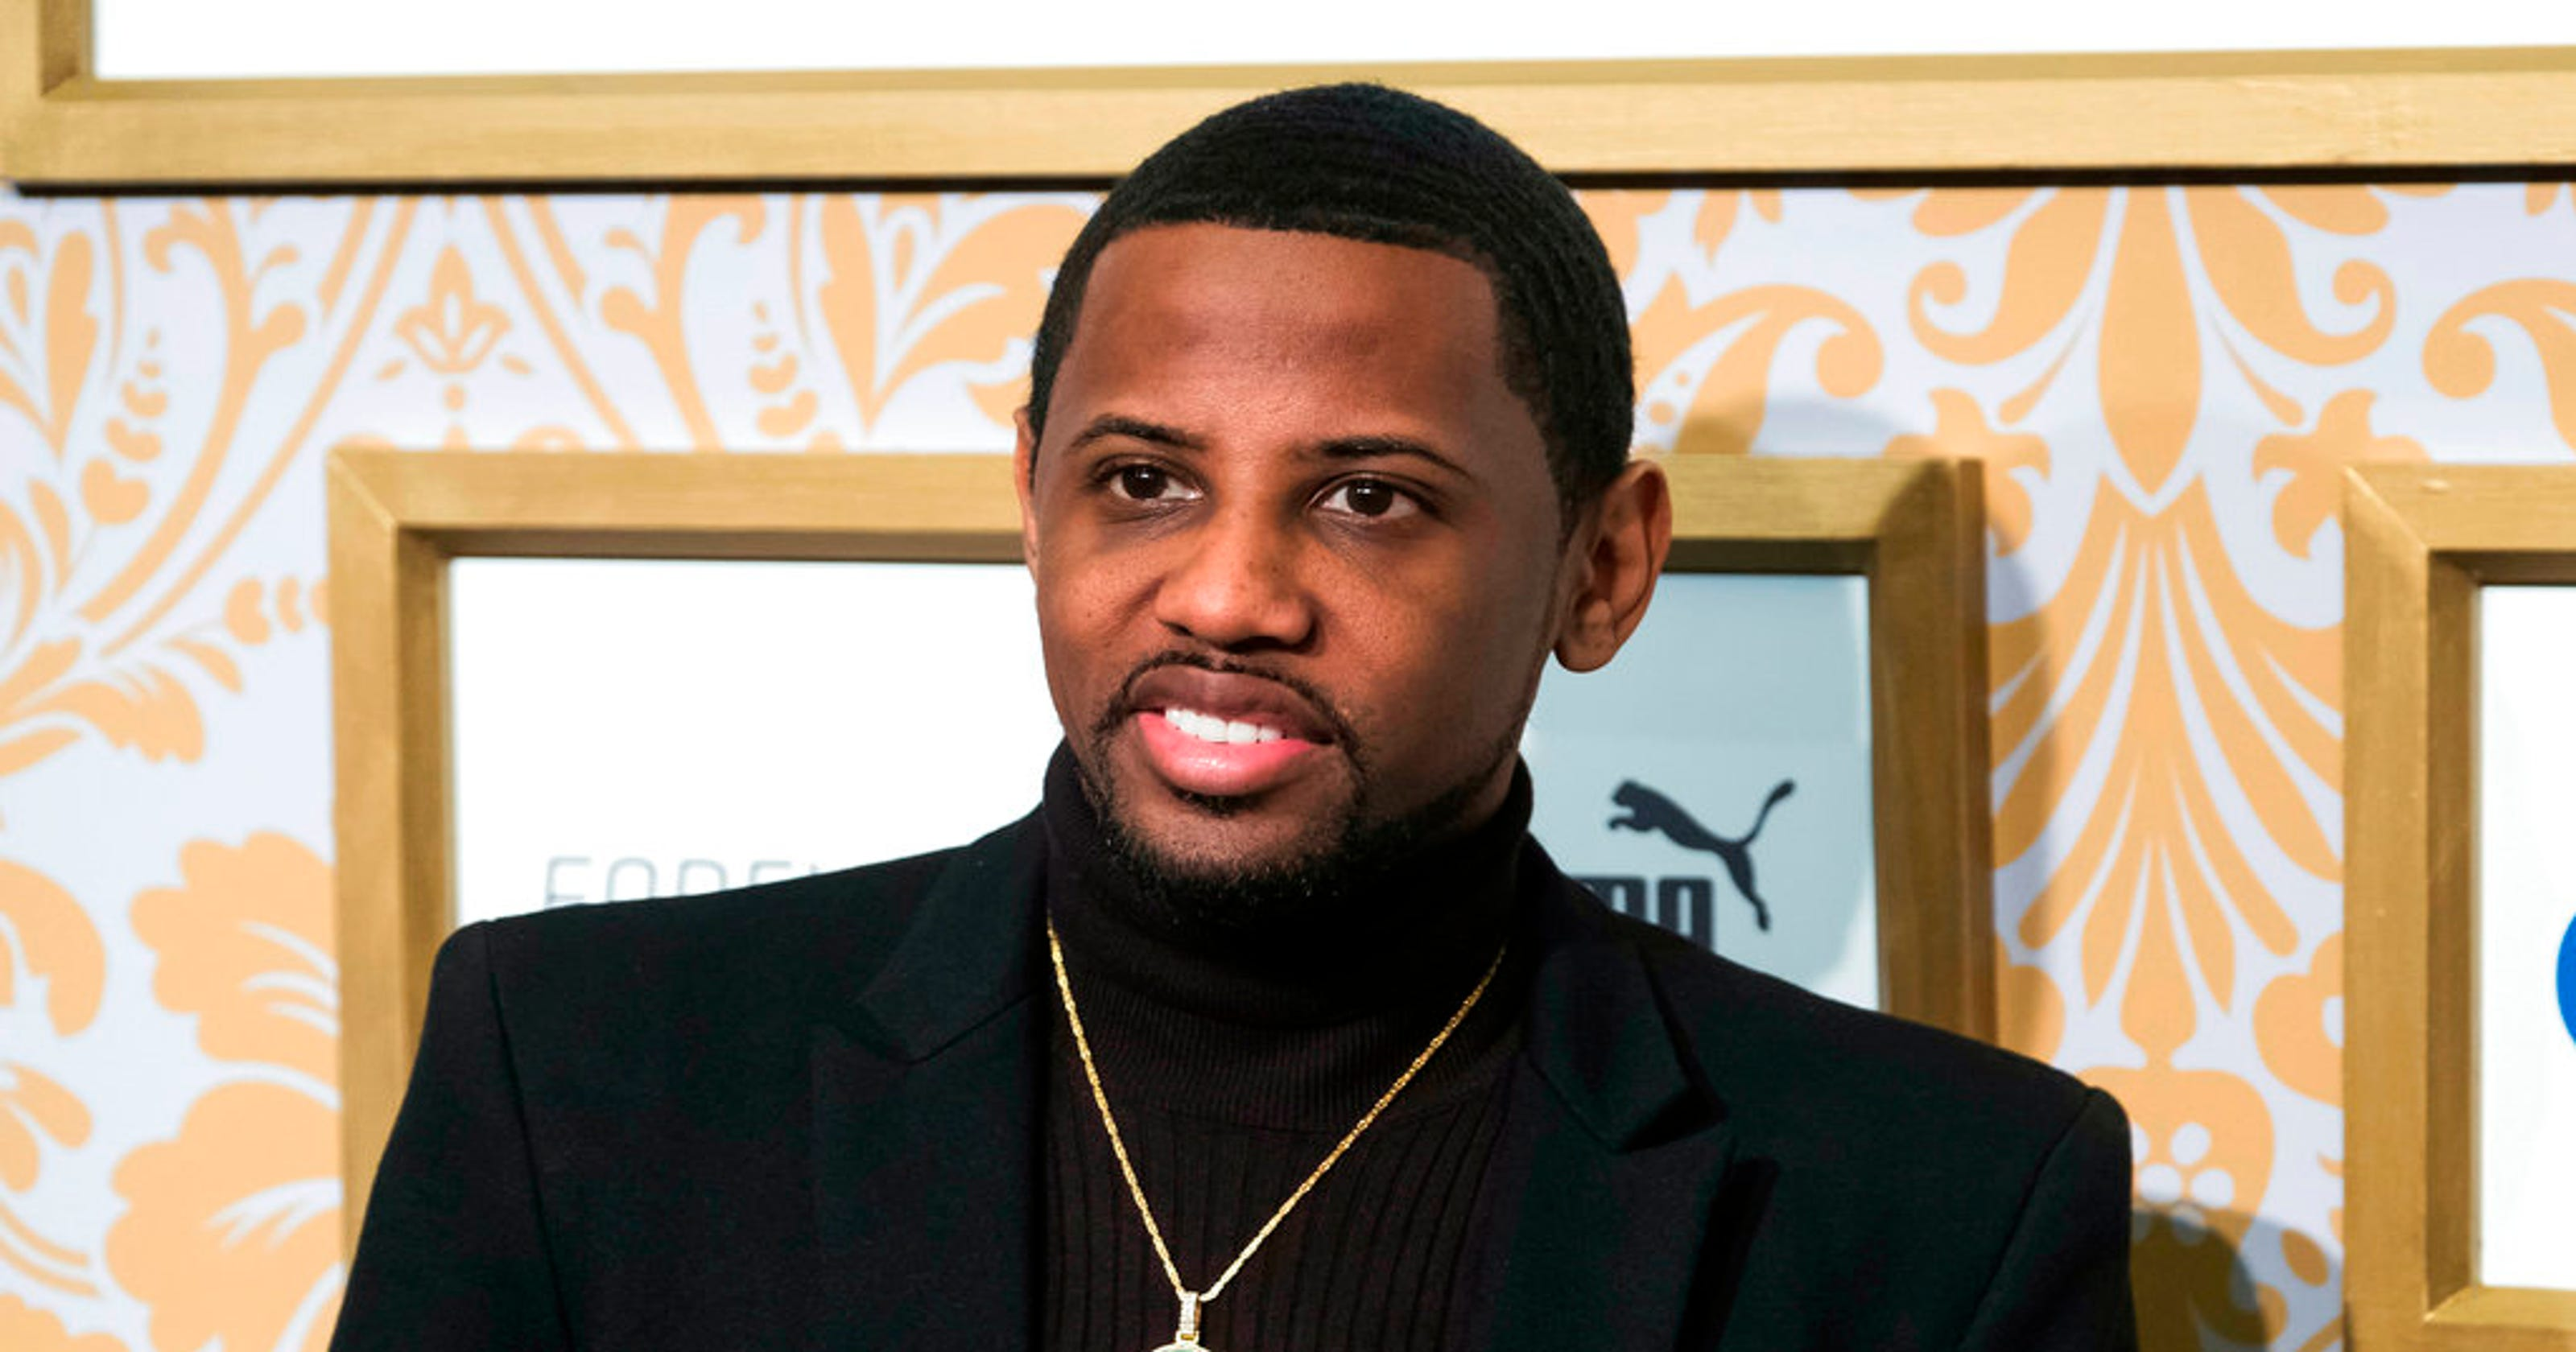 Fabolous indicted on four felony counts for domestic violence